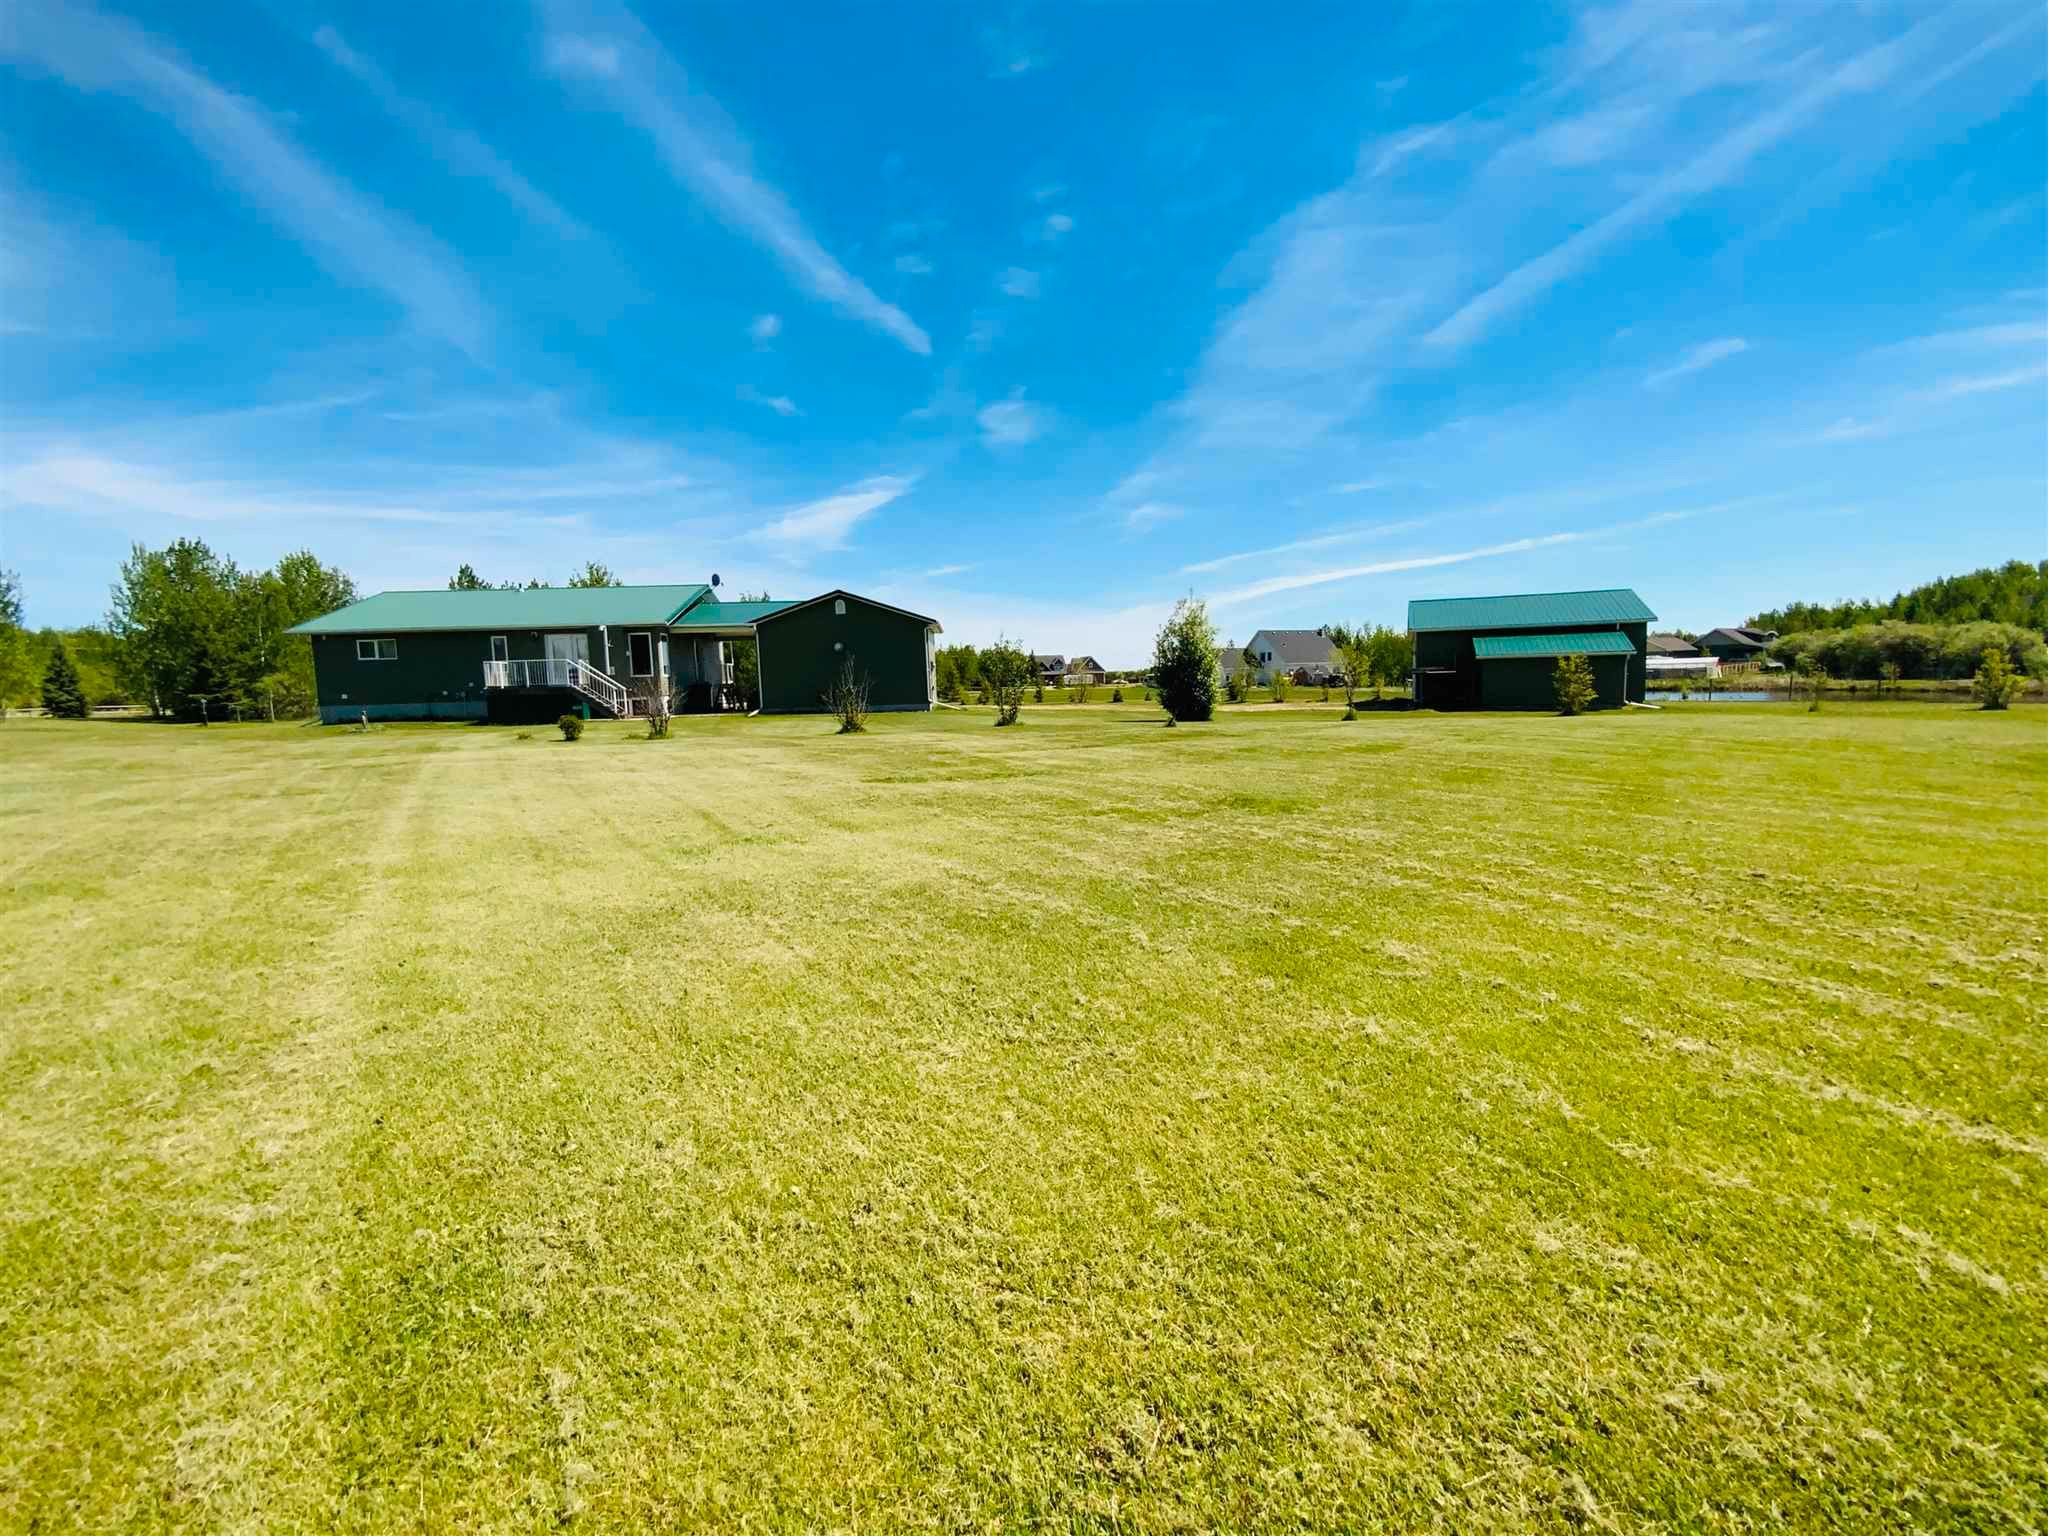 Main Photo: 18 243050 TWP RD 474: Rural Wetaskiwin County House for sale : MLS®# E4242590